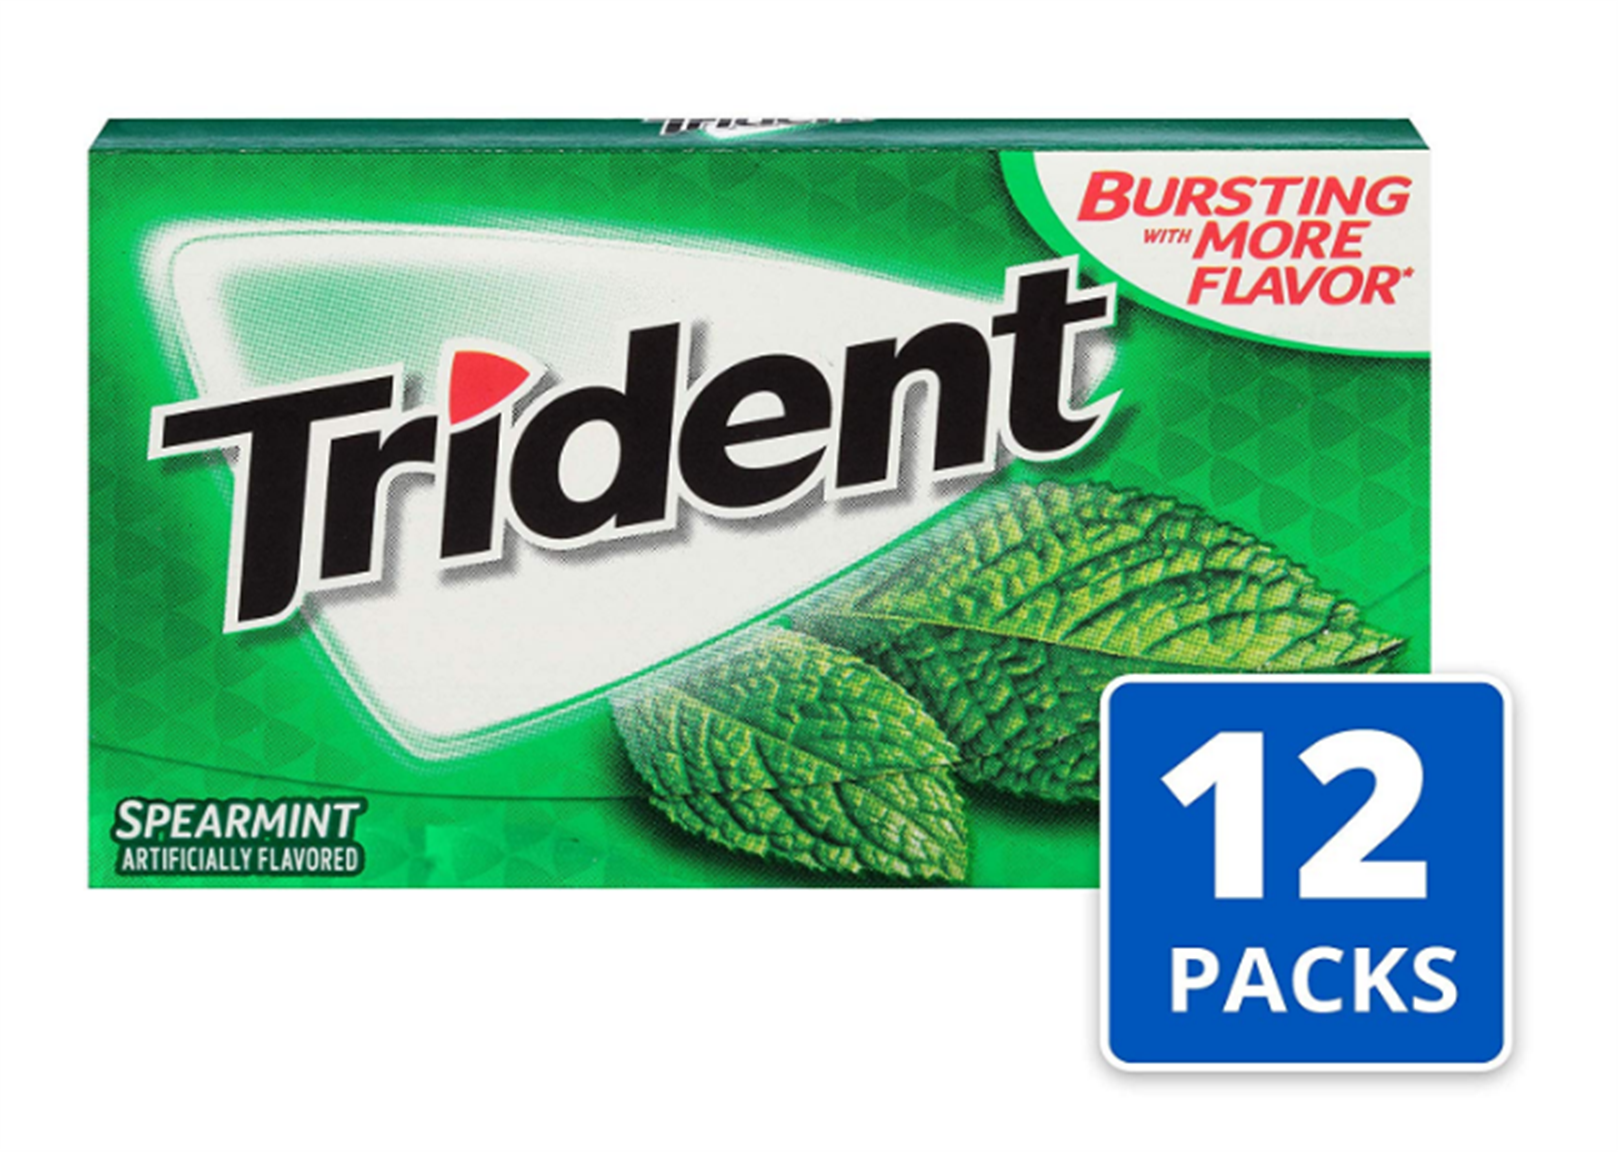 Amazon – 12 Pack of 14 Count Trident Sugar Free Gum (Spearmint) Only $5.83 + Free Shipping!